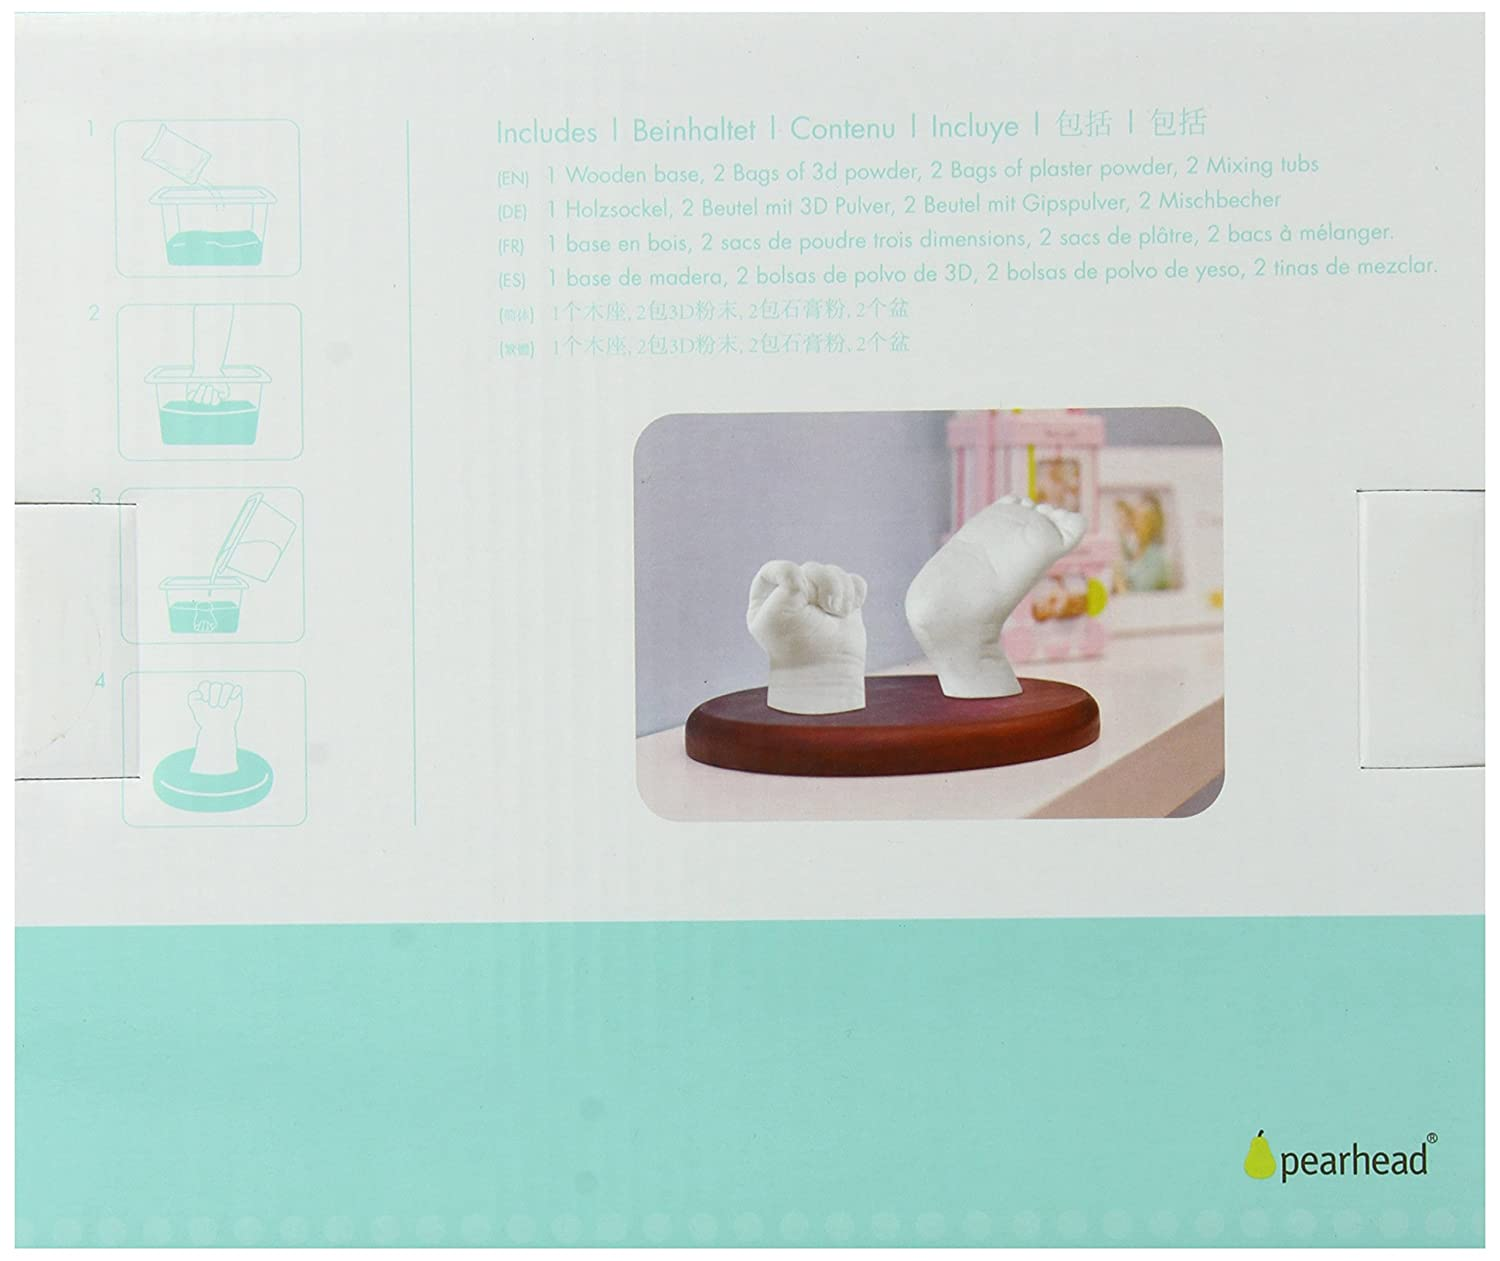 Amazon.com : Pearhead Babyprints 3D Deluxe Kit, Espresso (Discontinued by Manufacturer) : Baby Hand And Footprint Makers : Baby